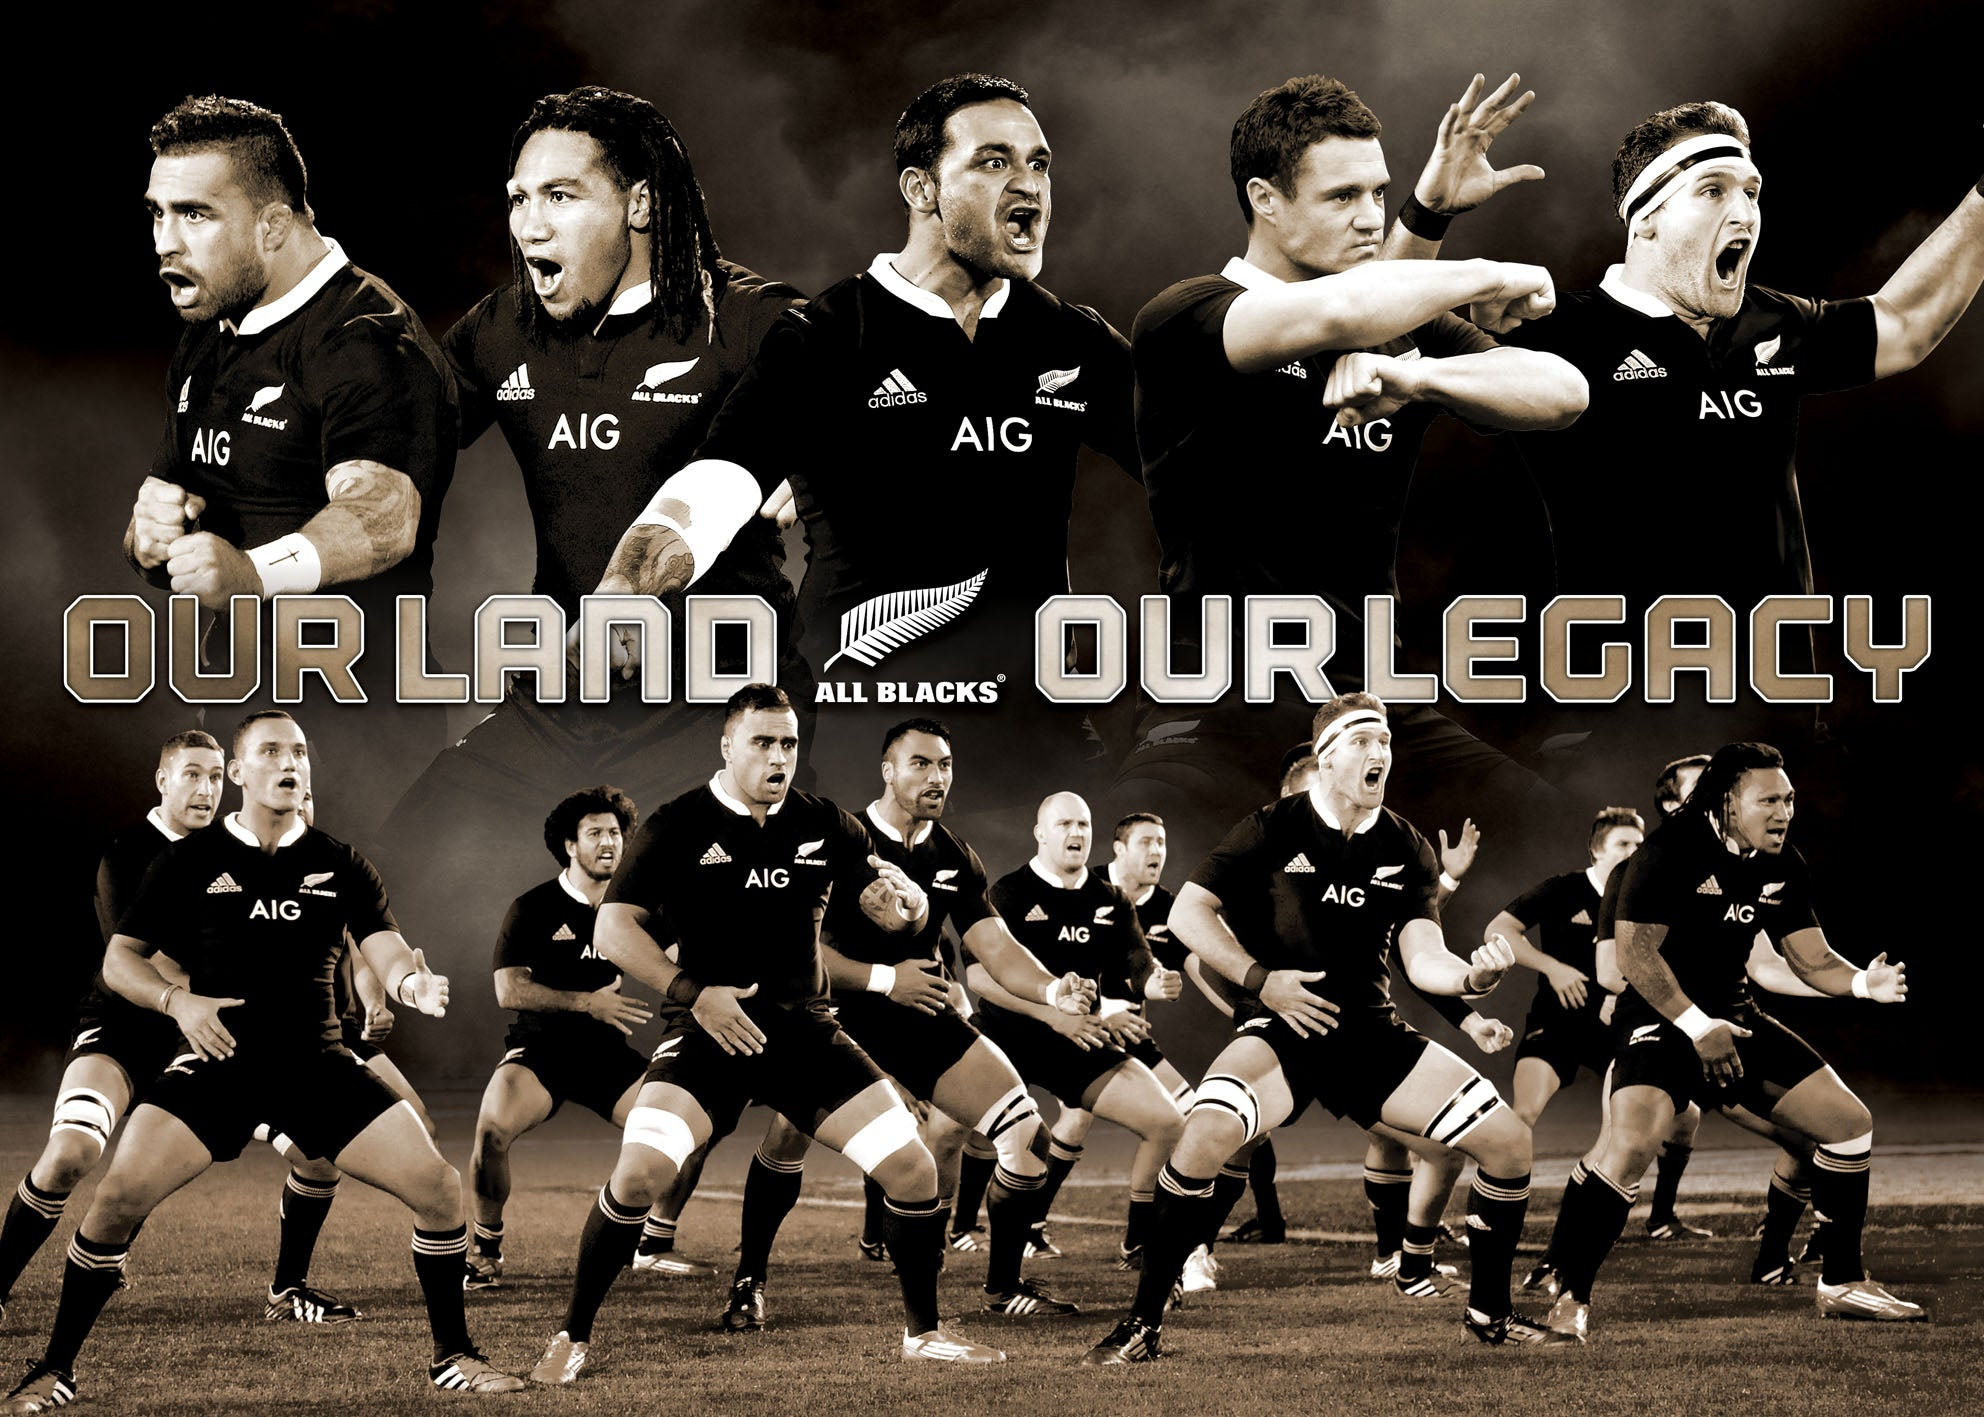 Our Land our Legacy All Blacks 70x50cm paper - Chamton